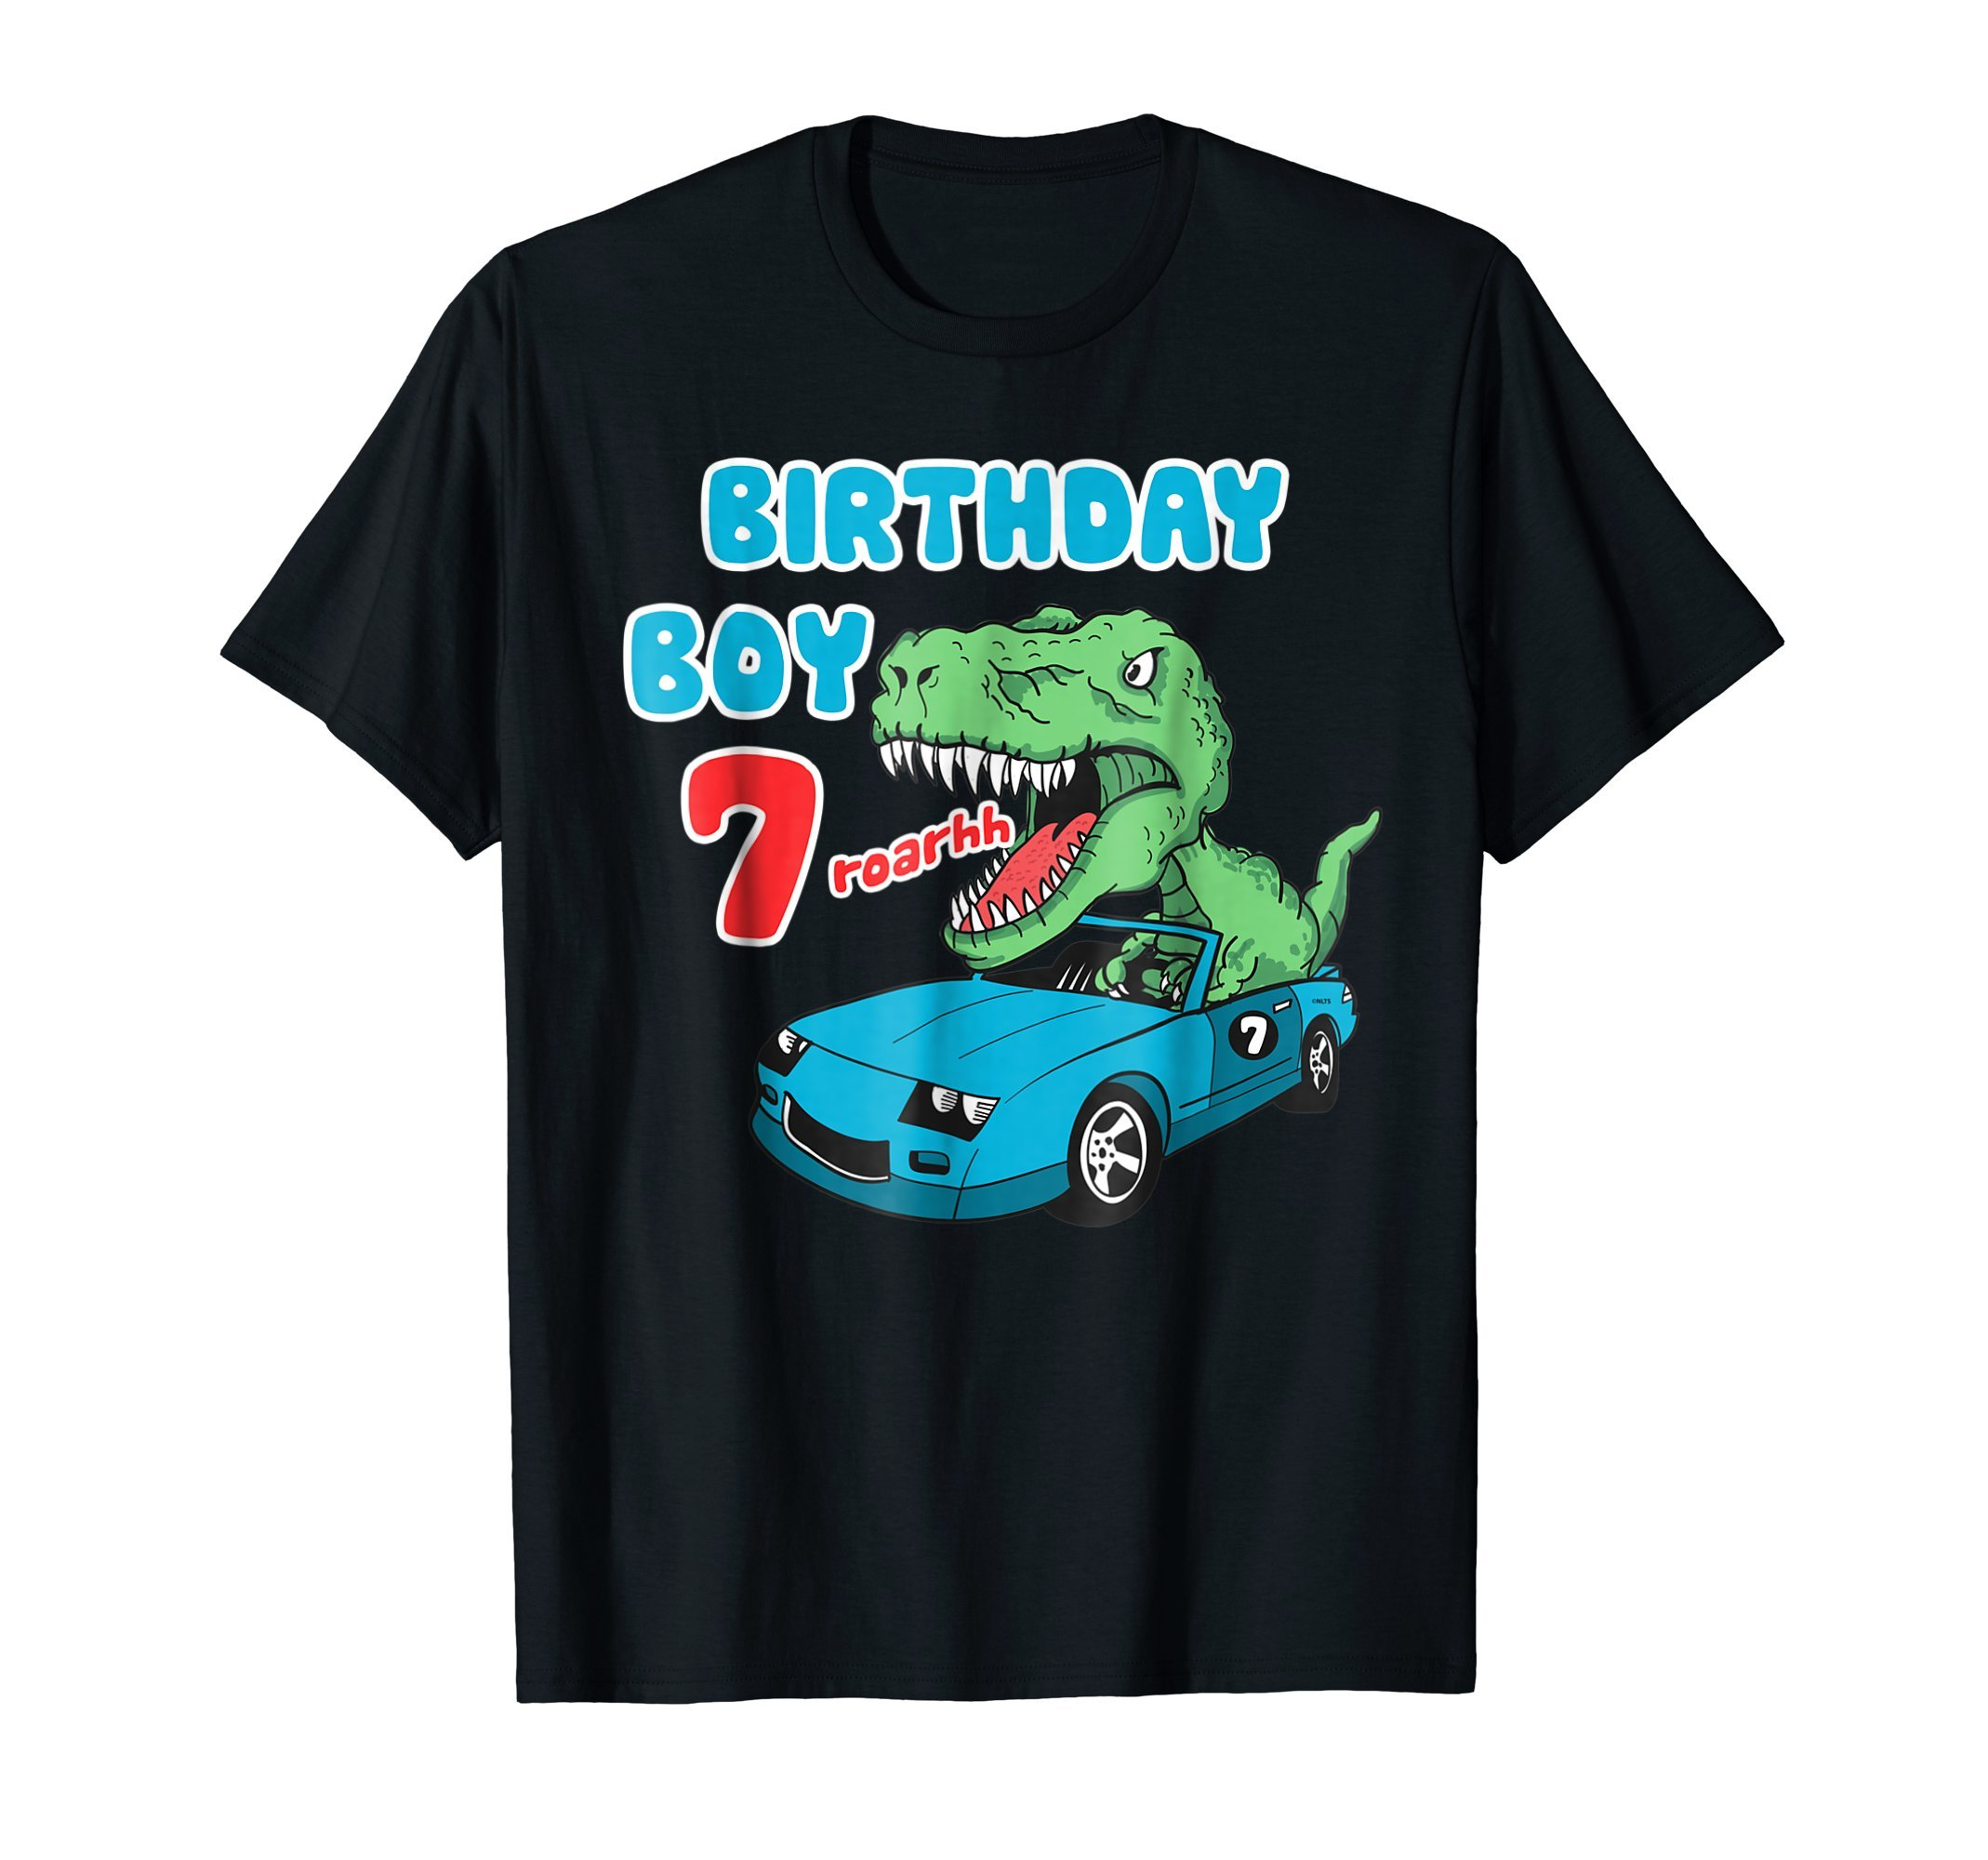 Dinosaur-Racer-Birthday-Boy-7th-Birthday-Fun-Humor-T-Shirt-T